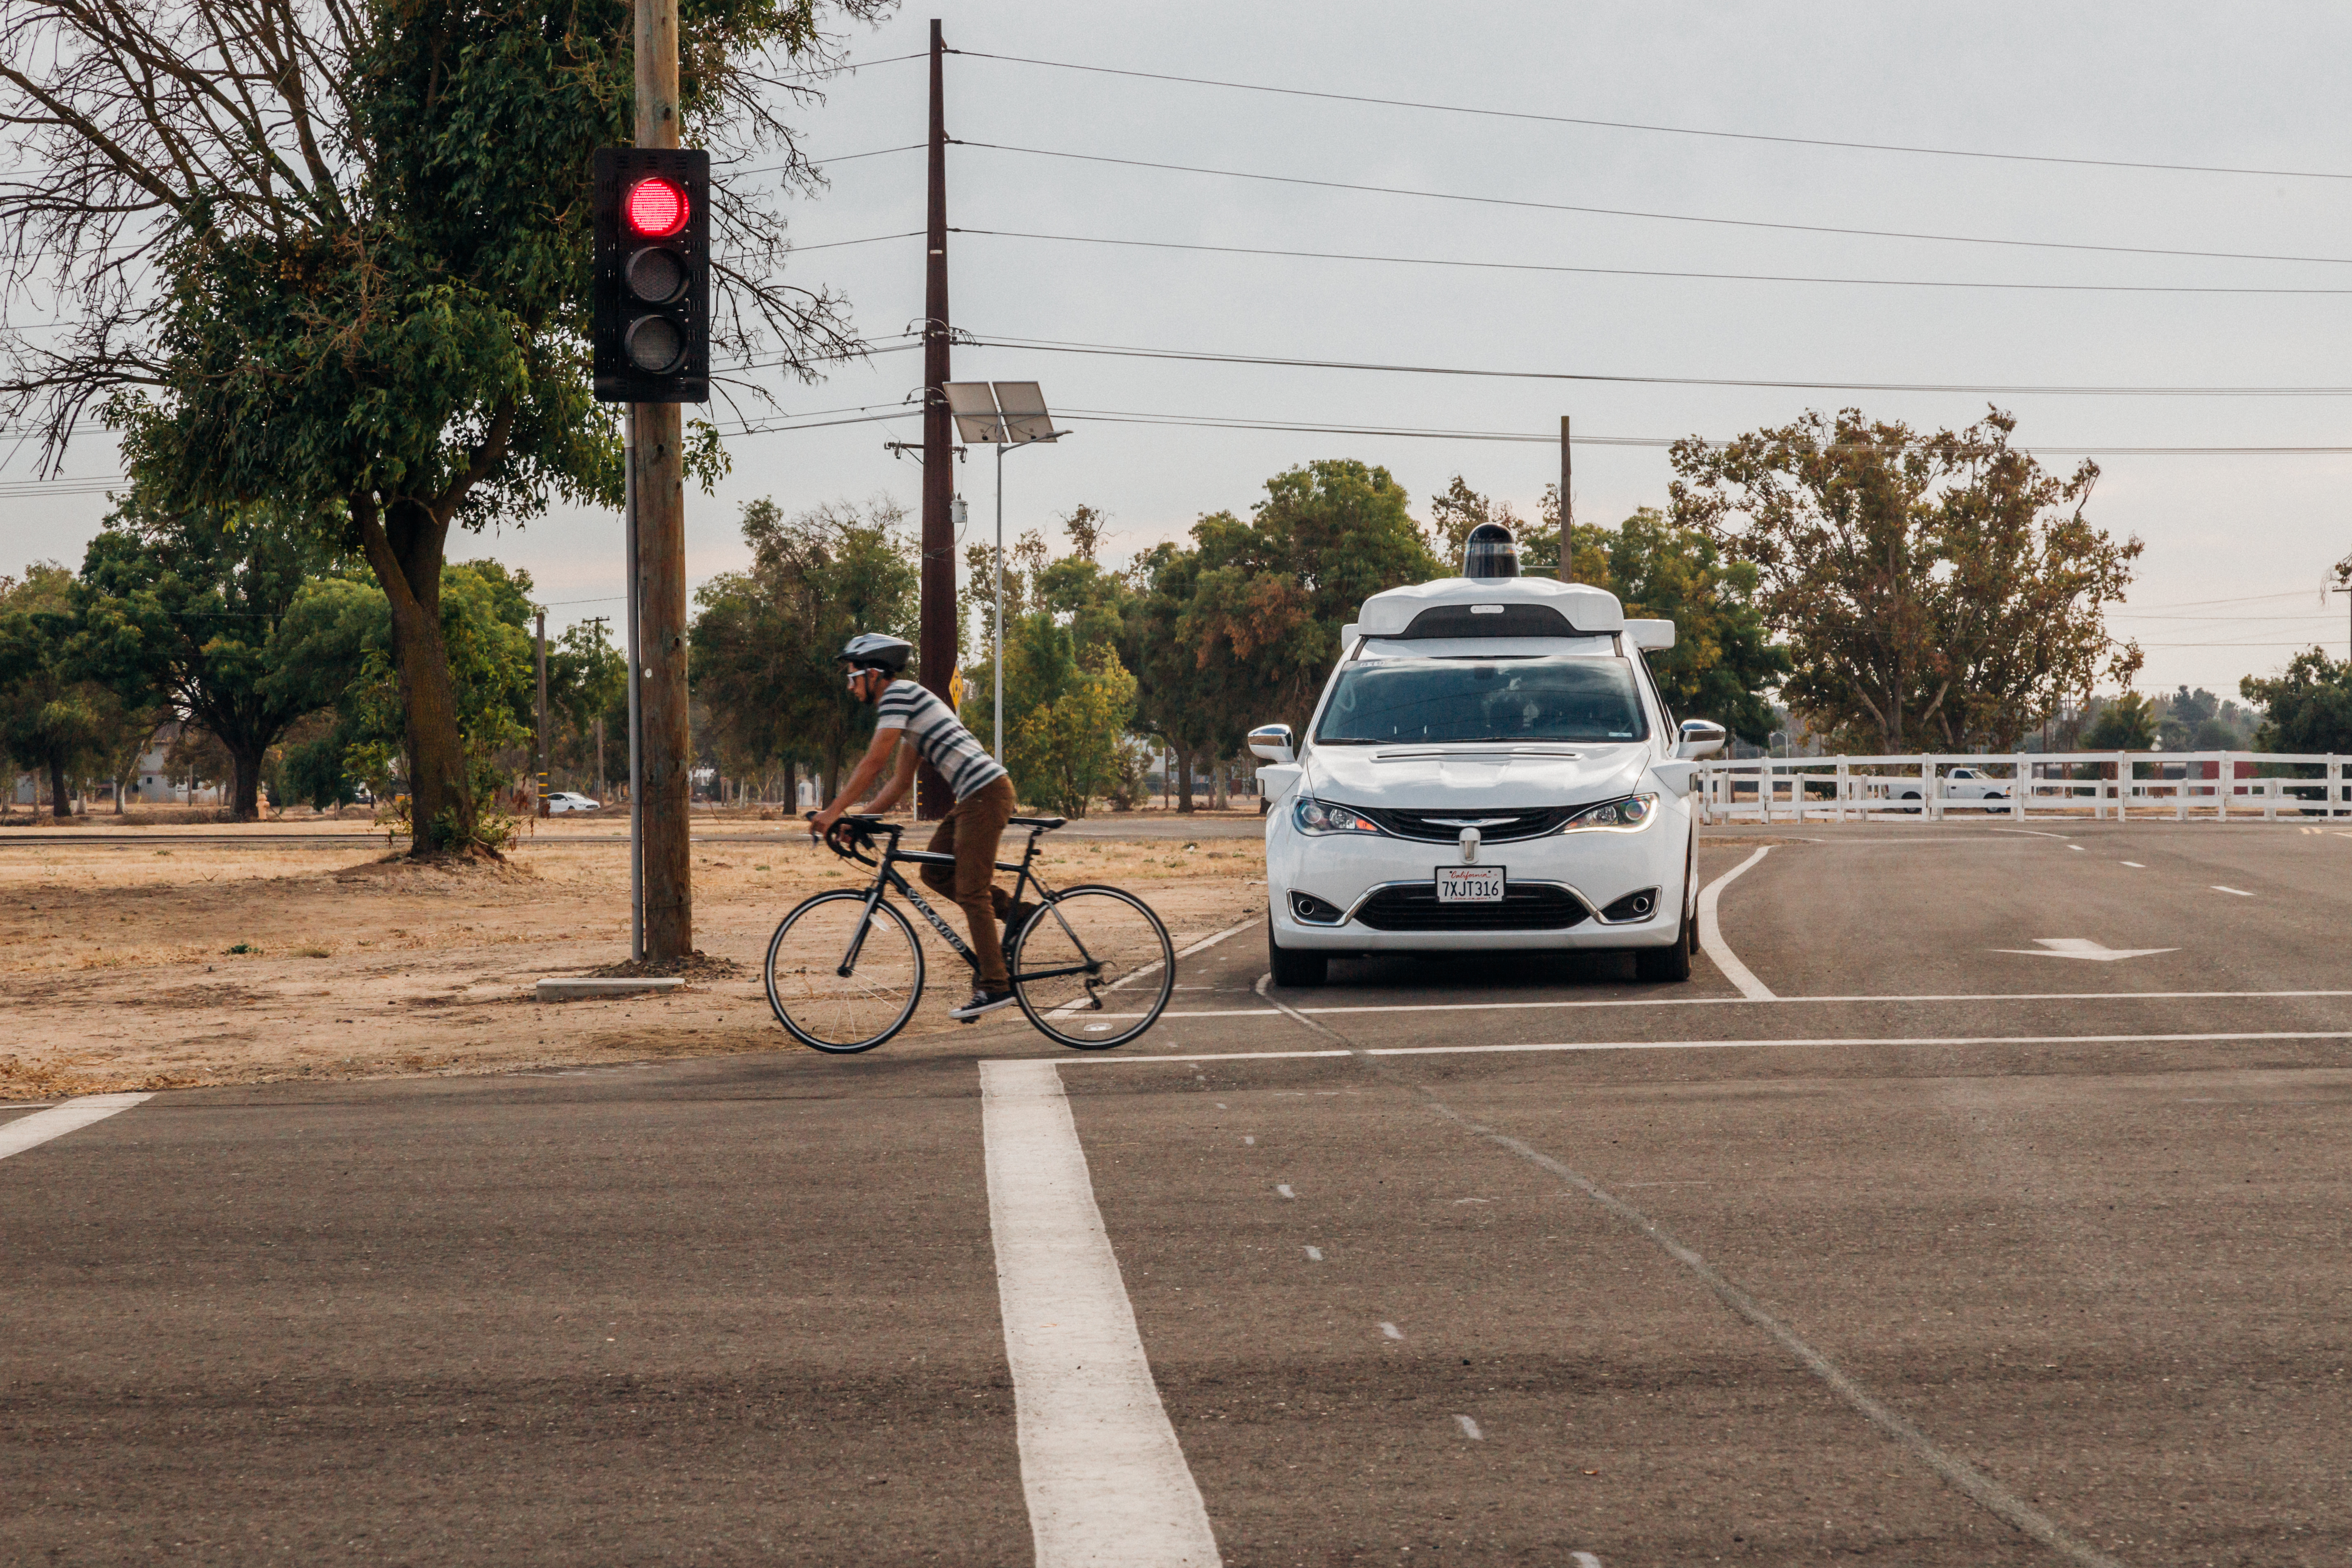 Alphabet's self-driving van waits for a cyclist to cross the road.